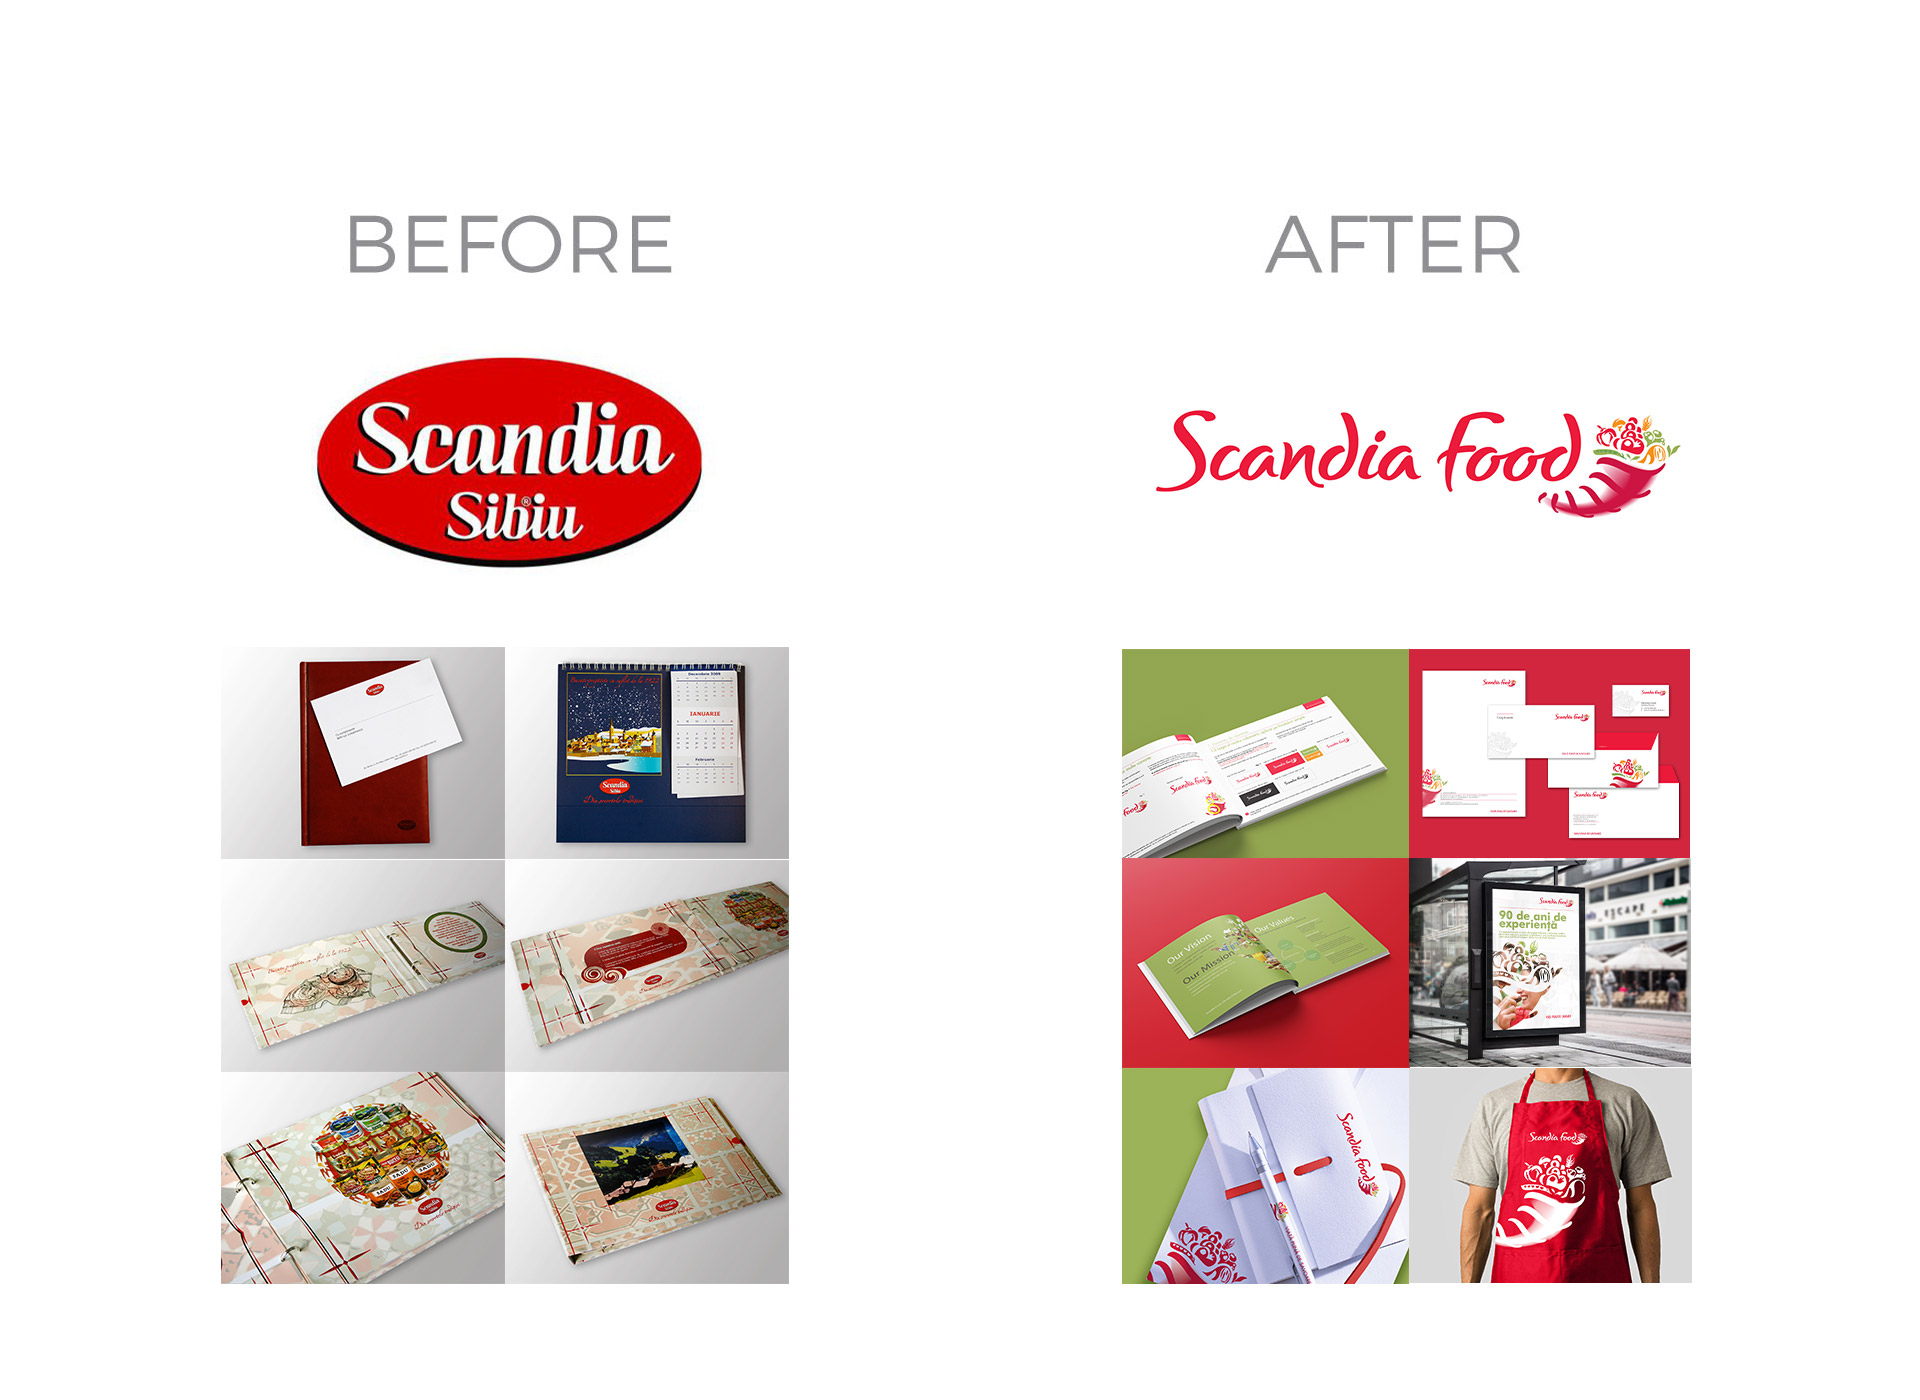 scandia food rebranding before and after